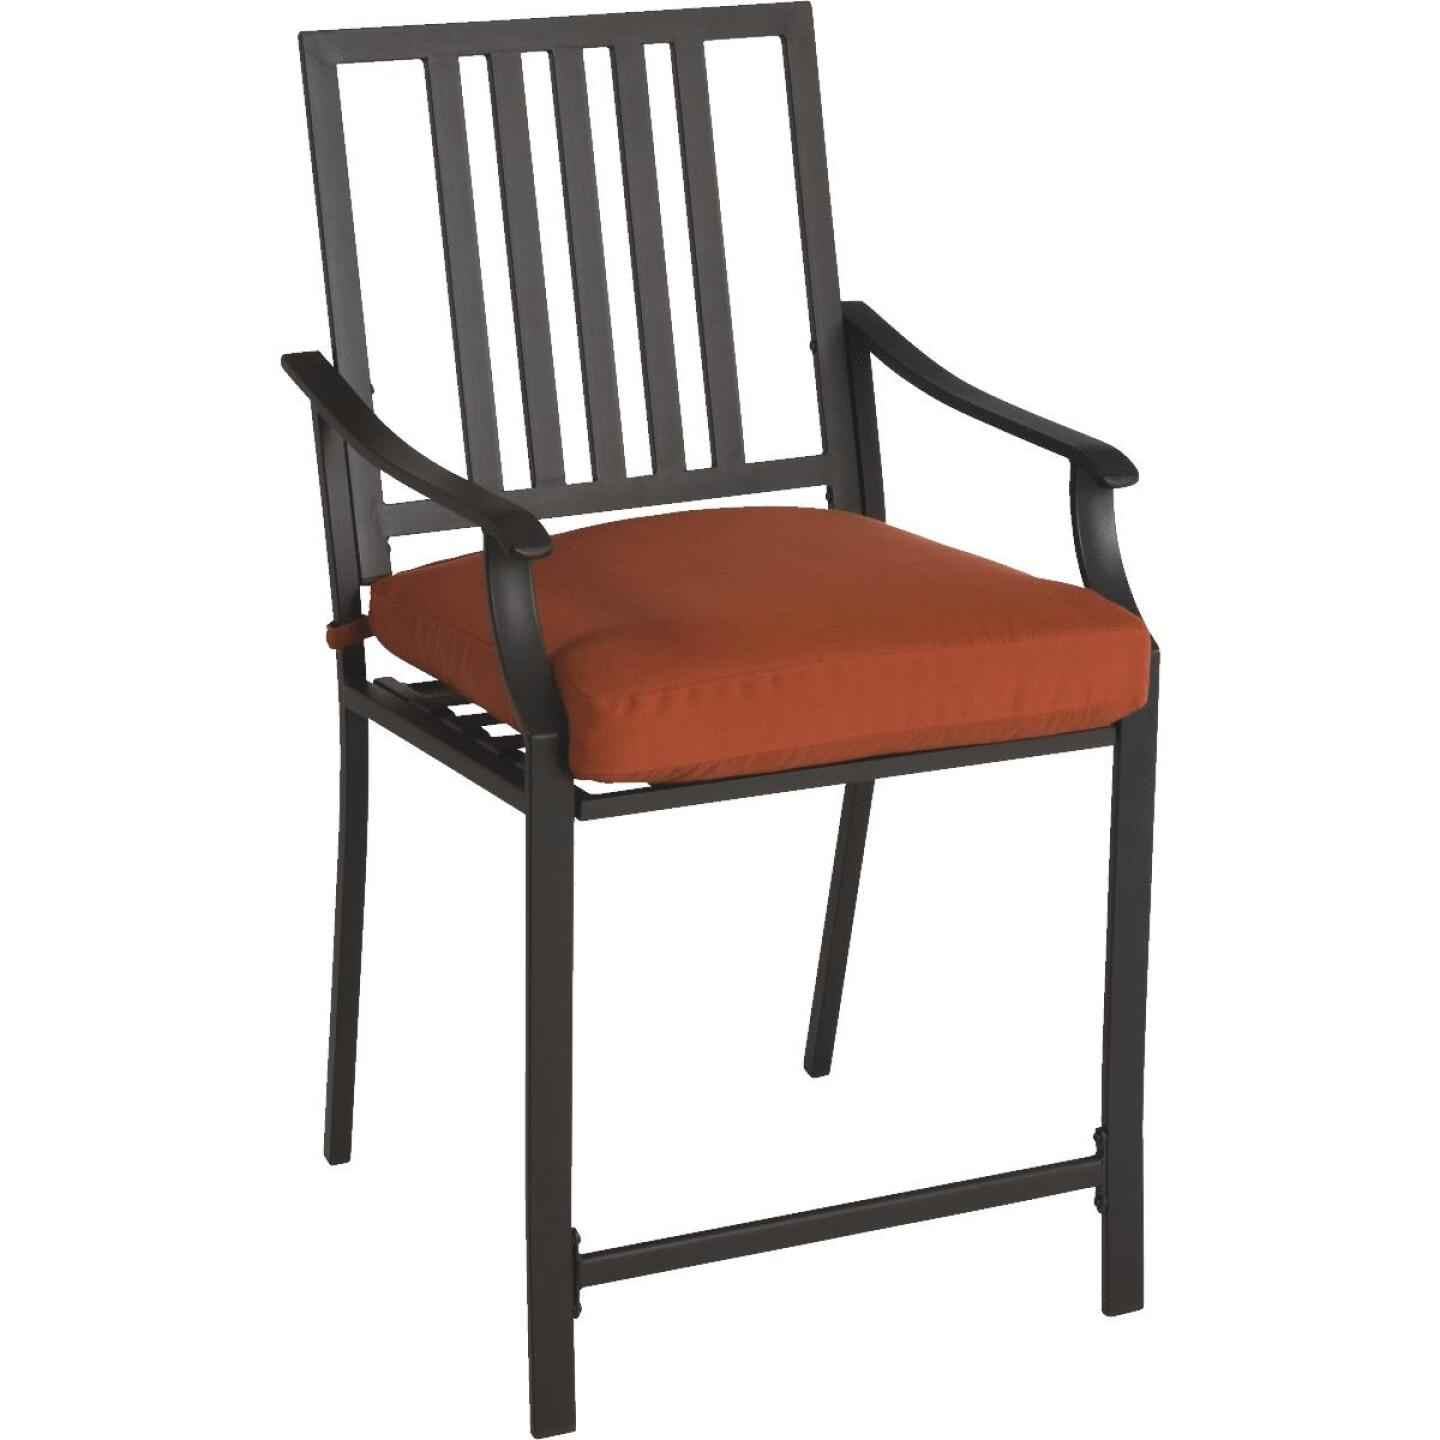 Nantucket 3-Piece Bistro Set with Seat Cushions Image 2